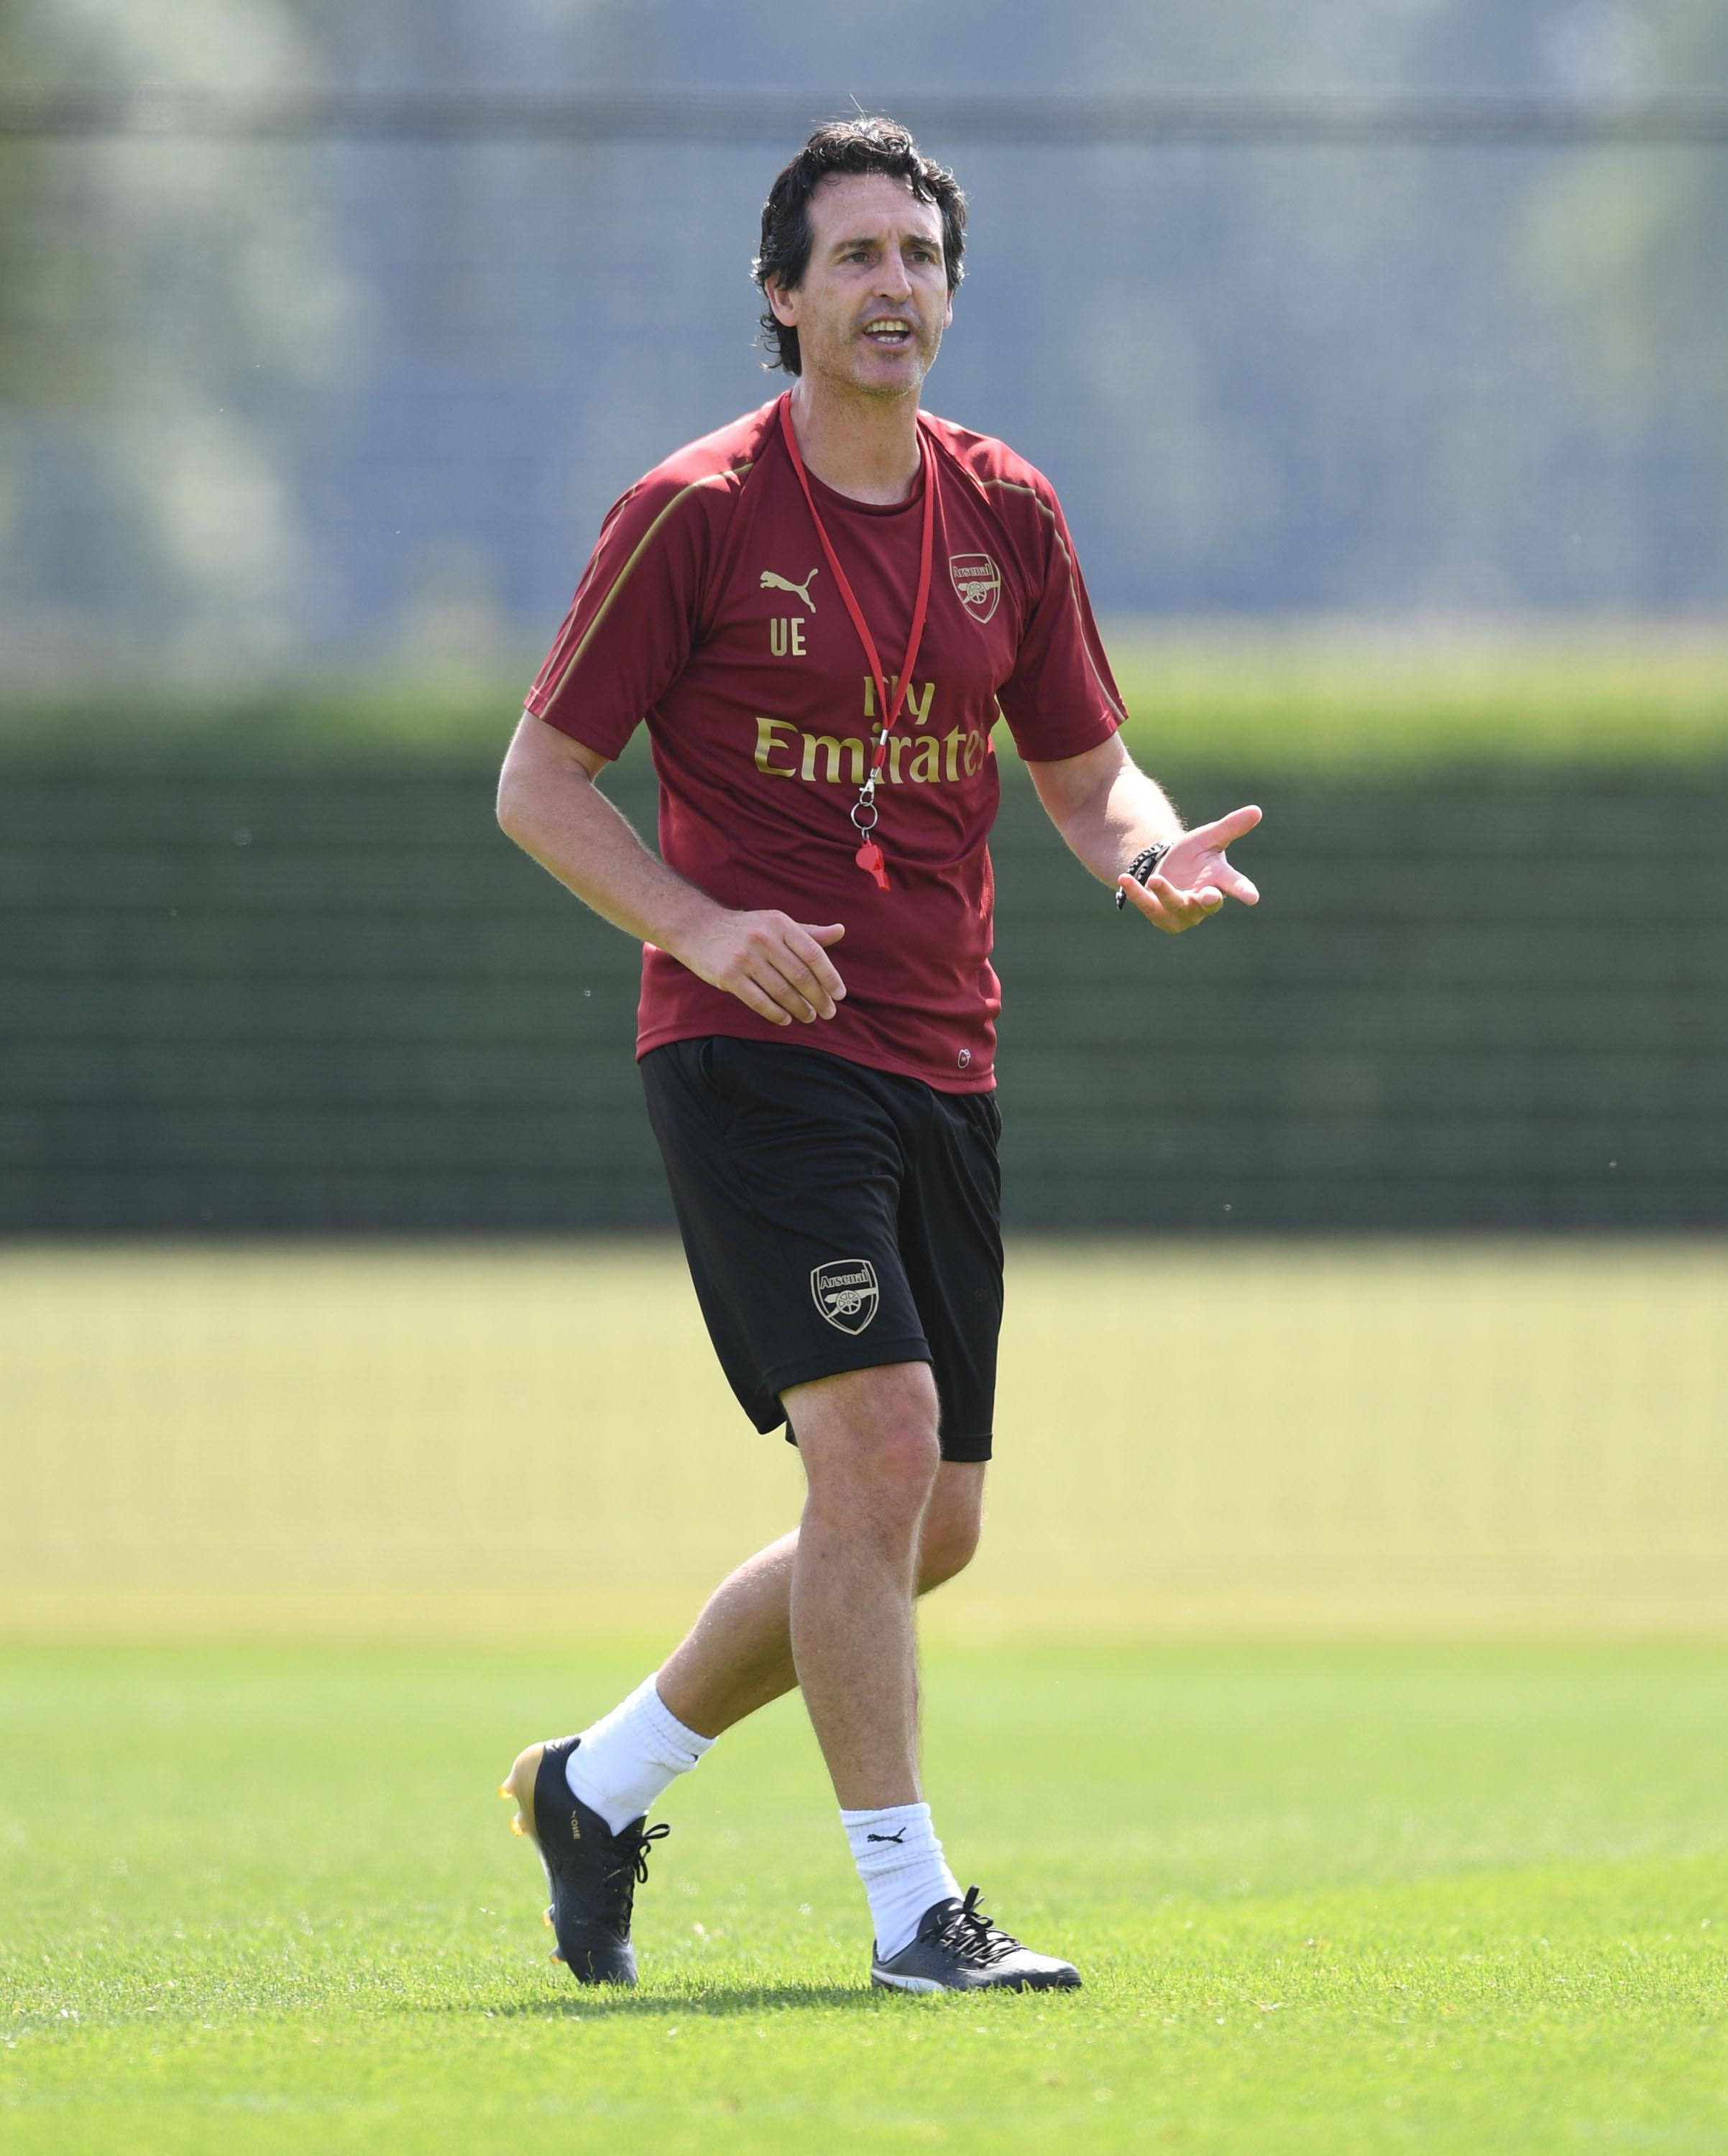 Unai Emery may still be hoping to conclude some deadline day deals